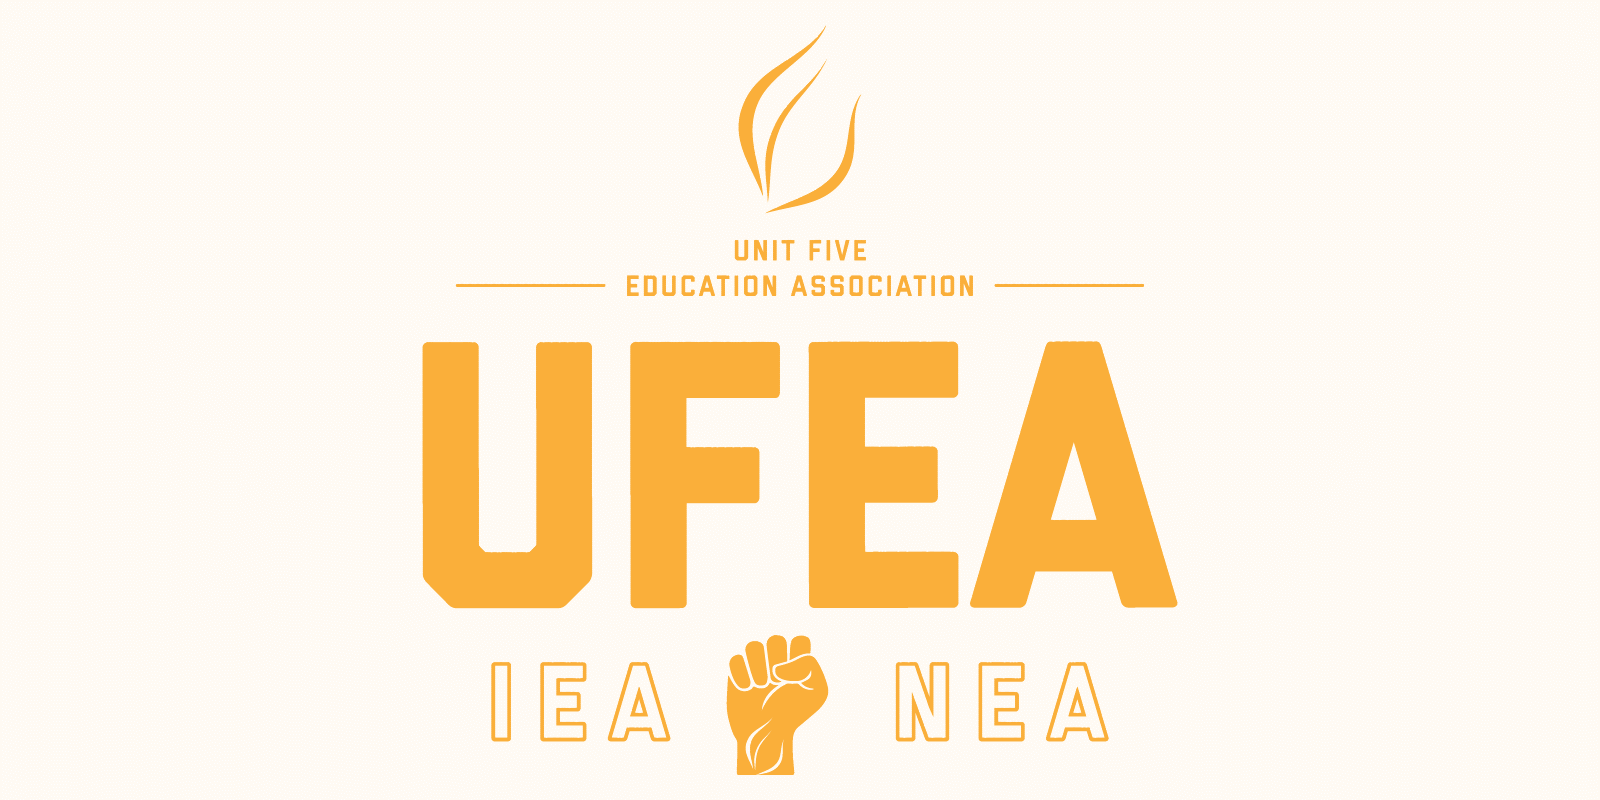 UFEA: Unit Five Education Association